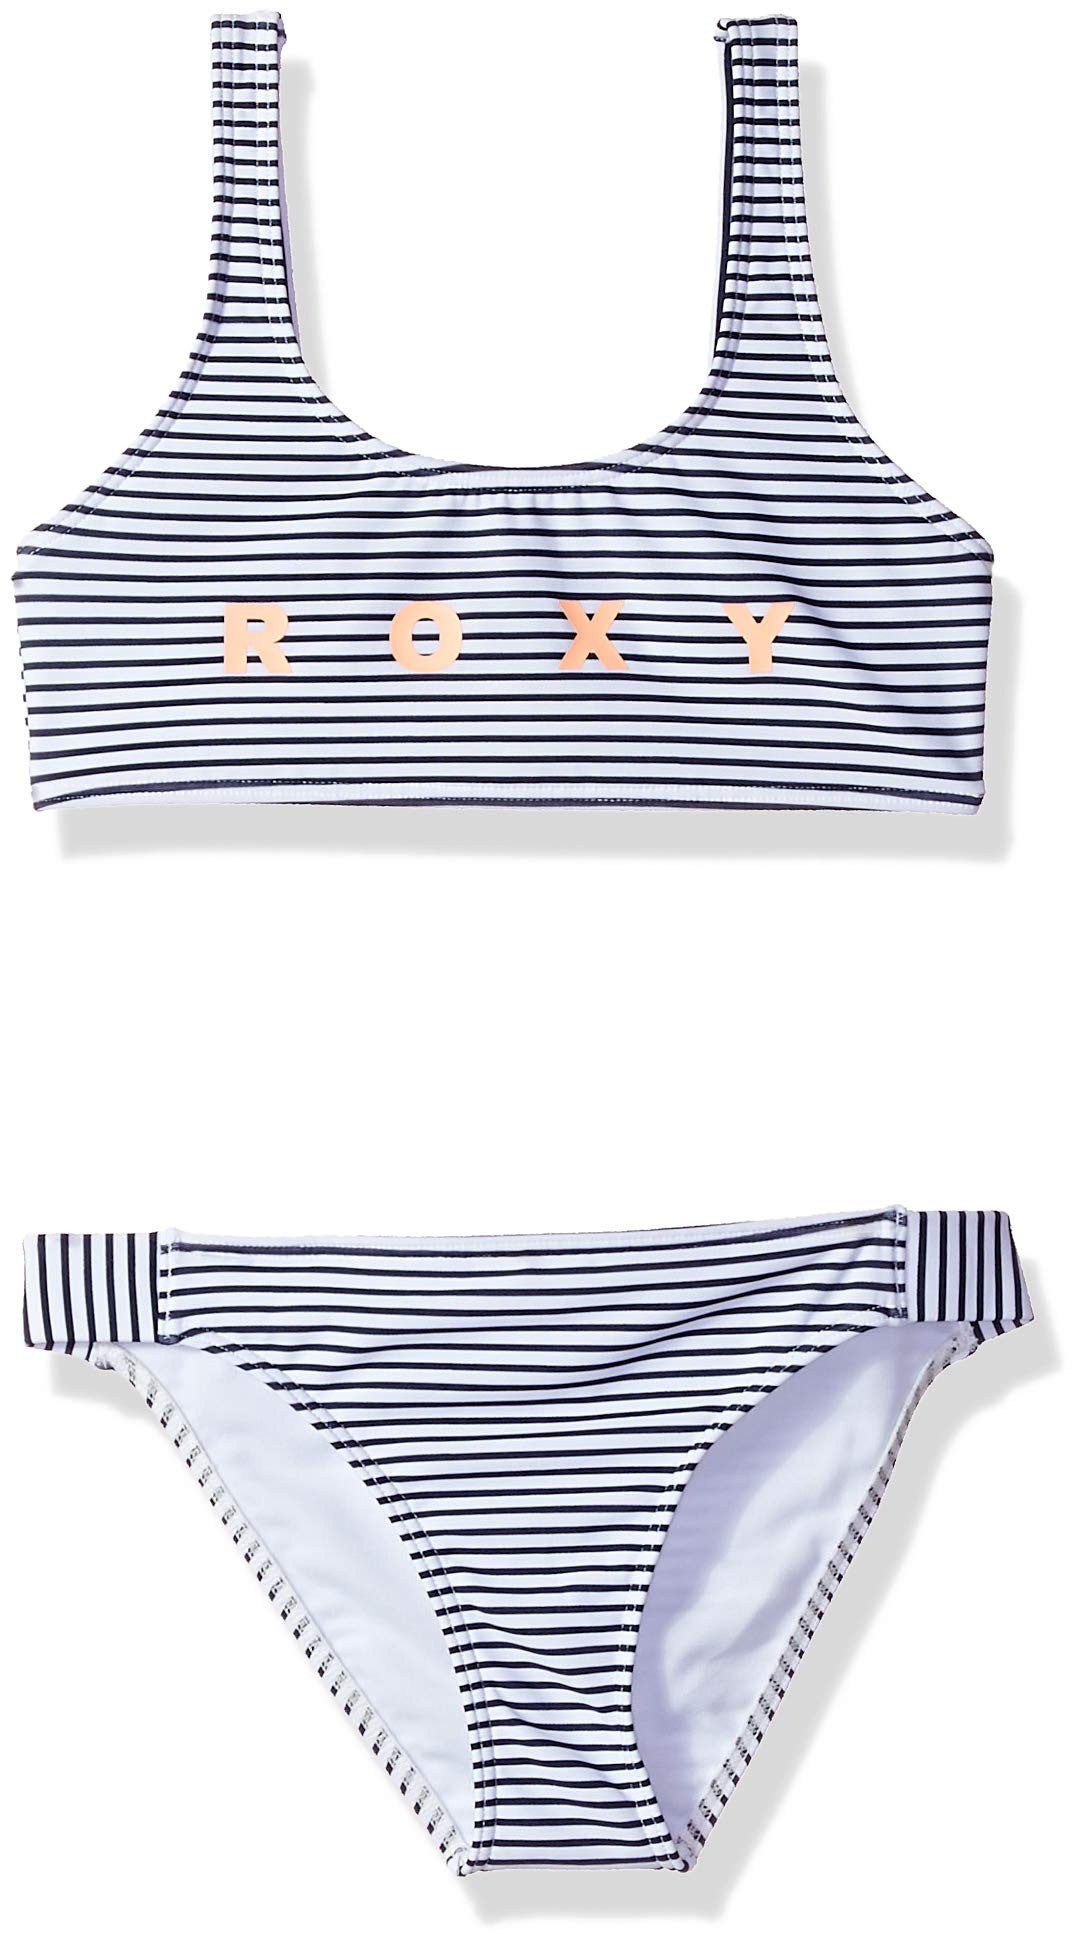 Roxy Big Girls' Surfing Free Athletic Swimsuit Set, Medieval Blue Cosy Stripes Swim, 12